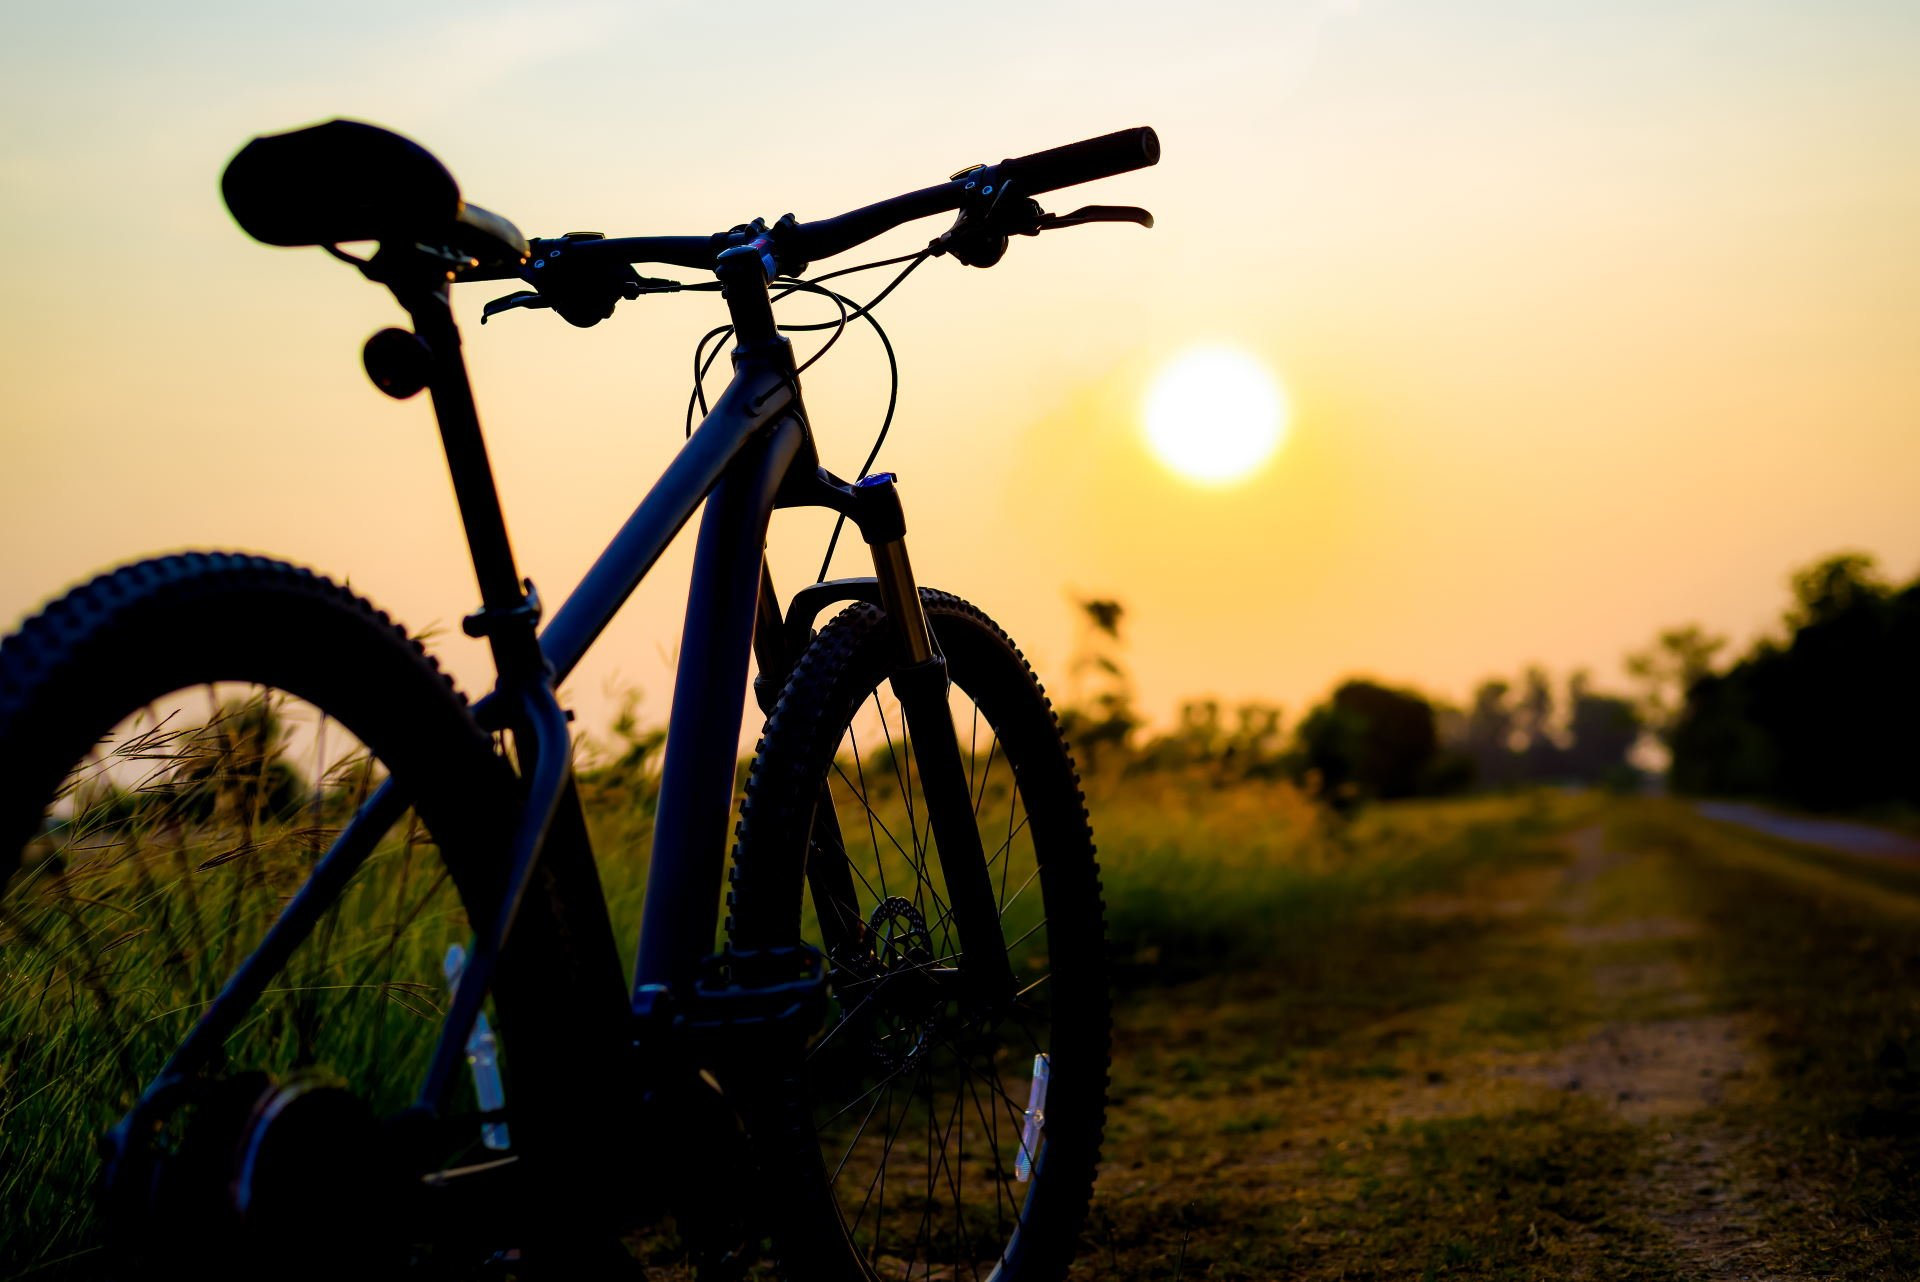 silhouette MTB, bicycle in grass at sunset